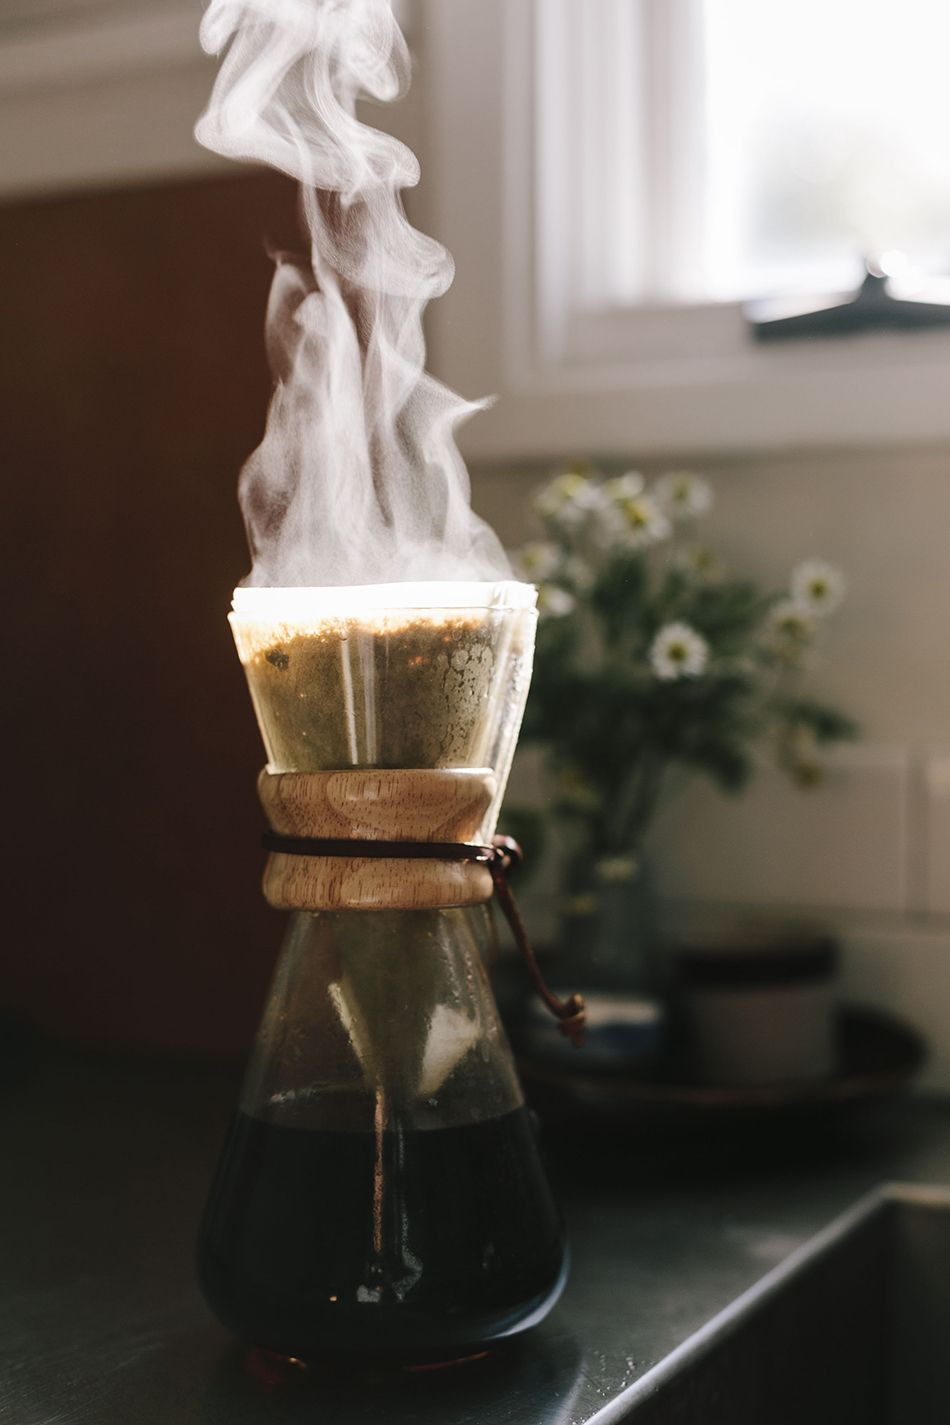 When it comes to wellness tips I turn to my pal and photographer Arna Bee. Read about her secret coffee recipe for jump-starting the morning.